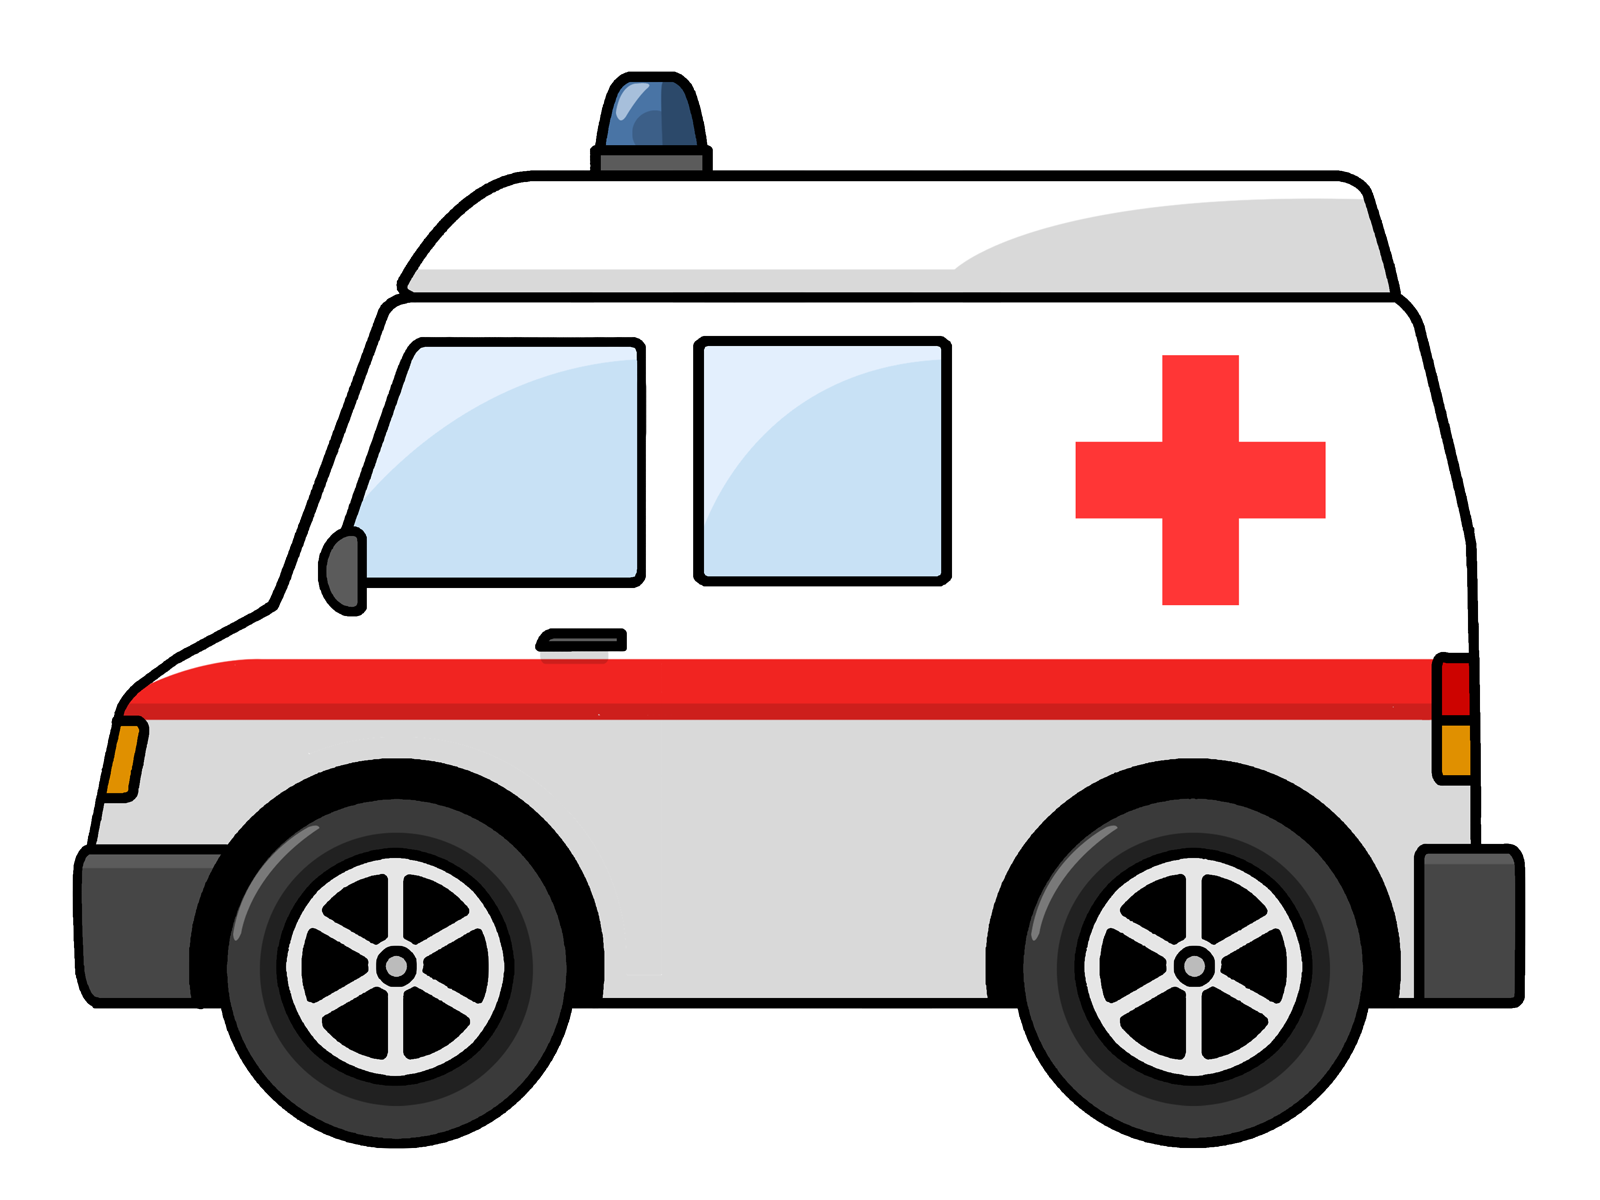 Seeing an is very. Ambulance clipart